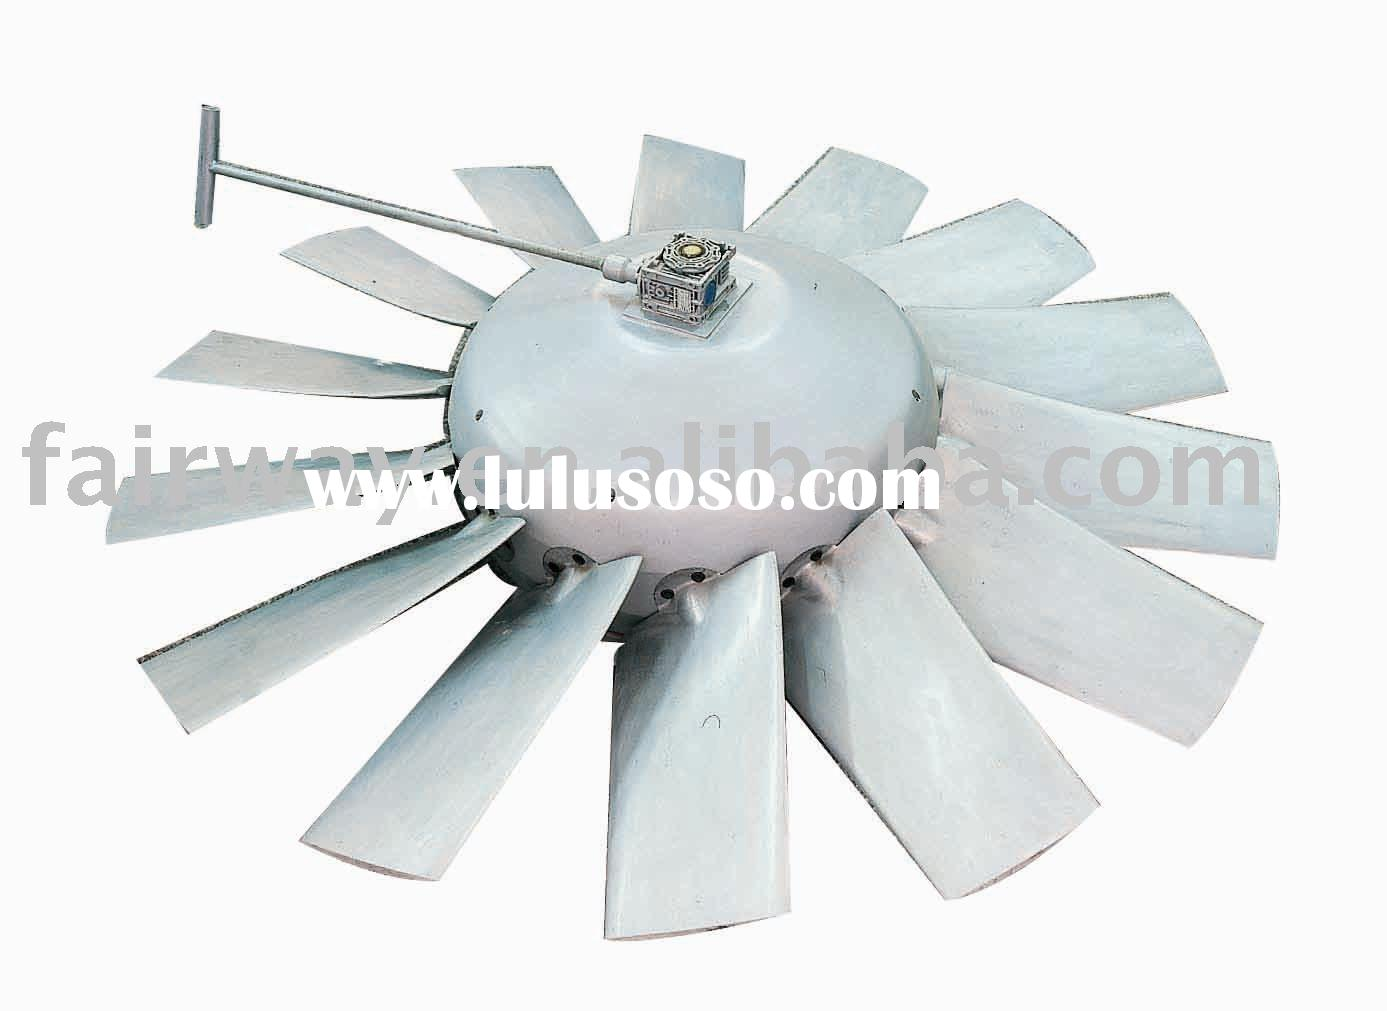 blade fan axial blade fan axial Manufacturers in LuLuSoSo.com page  #586C73